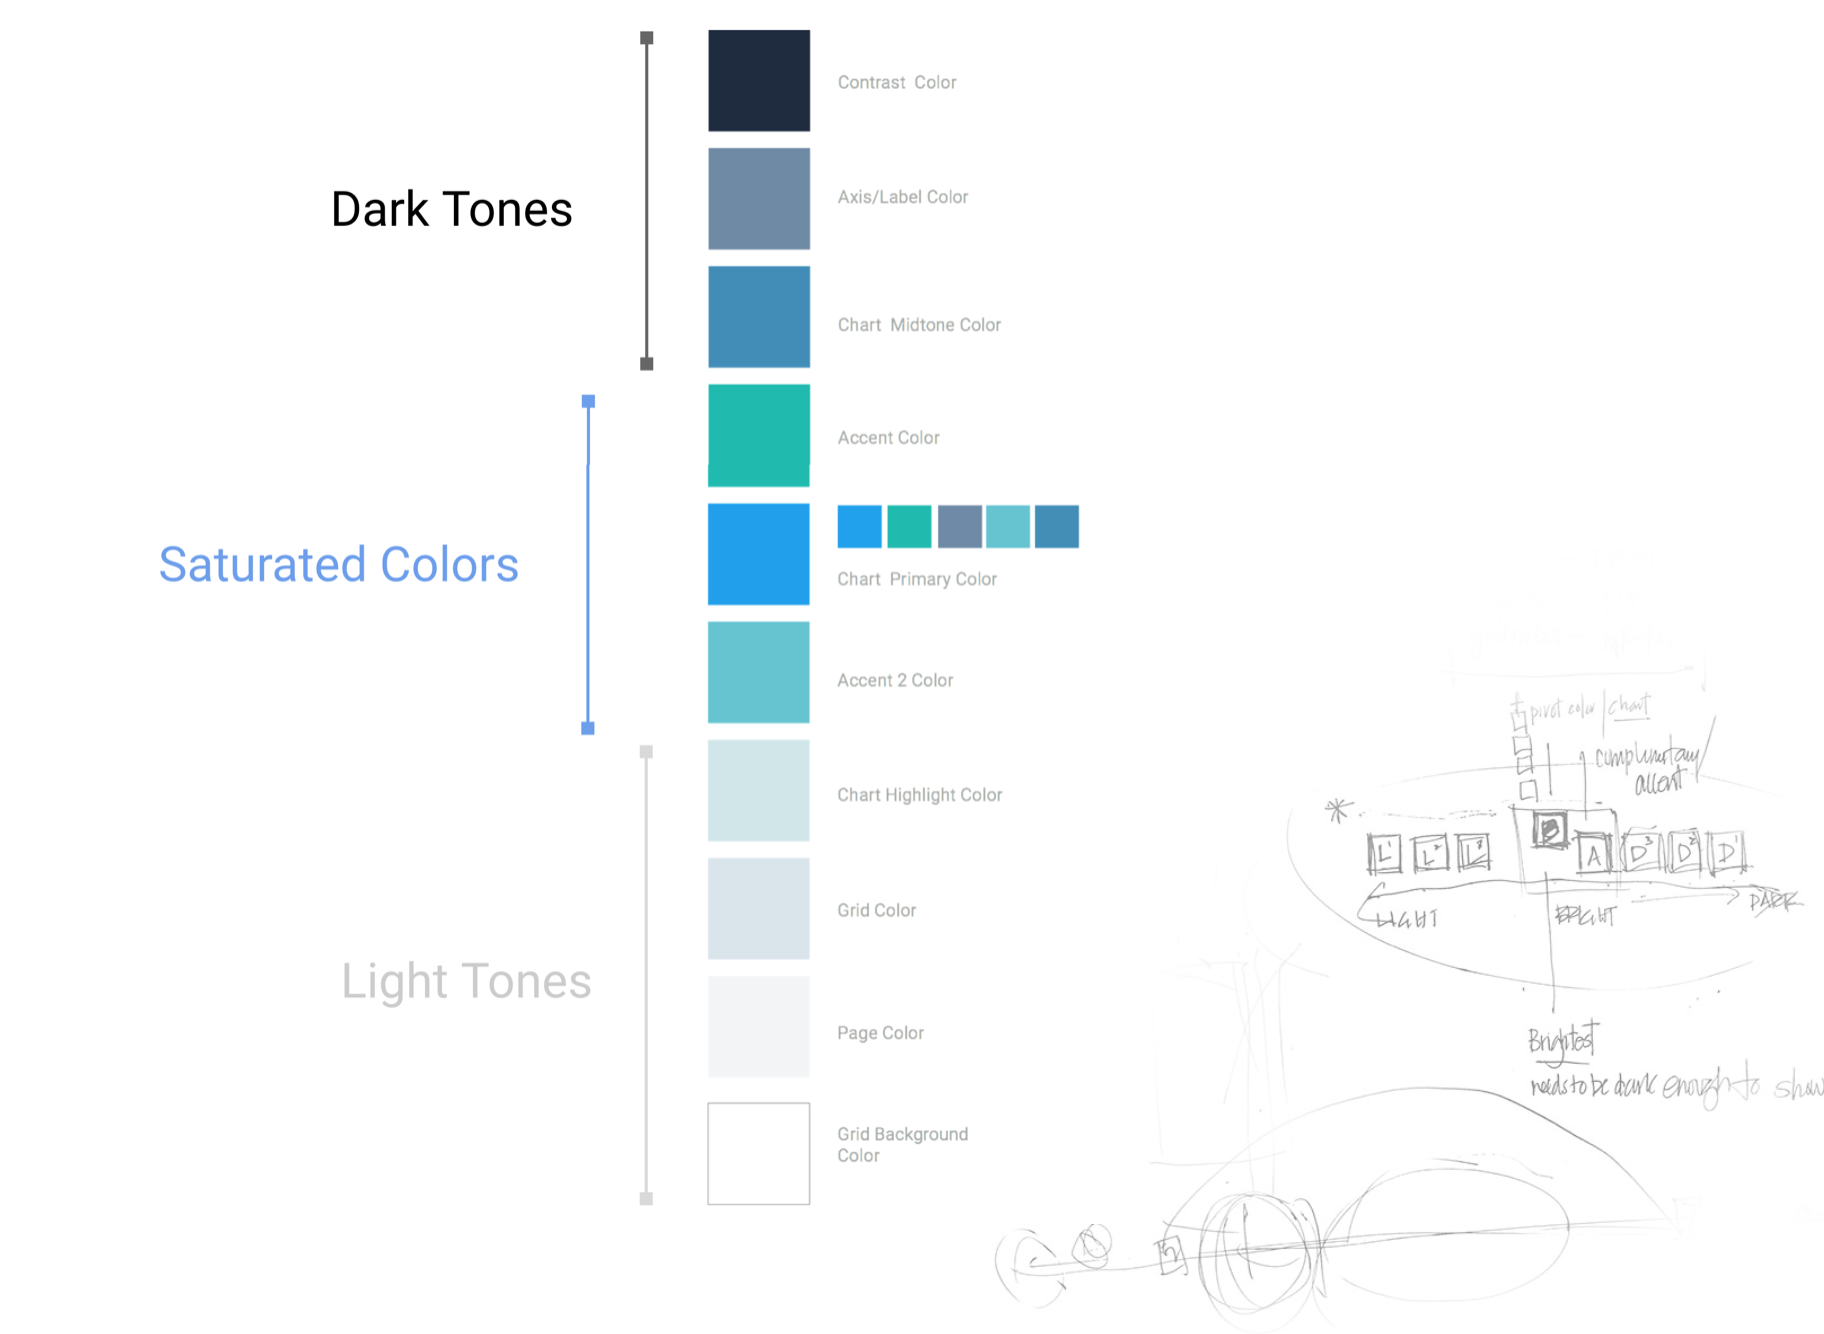 Palette formula - A systematic approach was taken for determining the color map. It is based on the concept of having a high contrast value range in, with a high saturated colors in the mid-tones. This ensures the appropriate amount of contract and legibility.